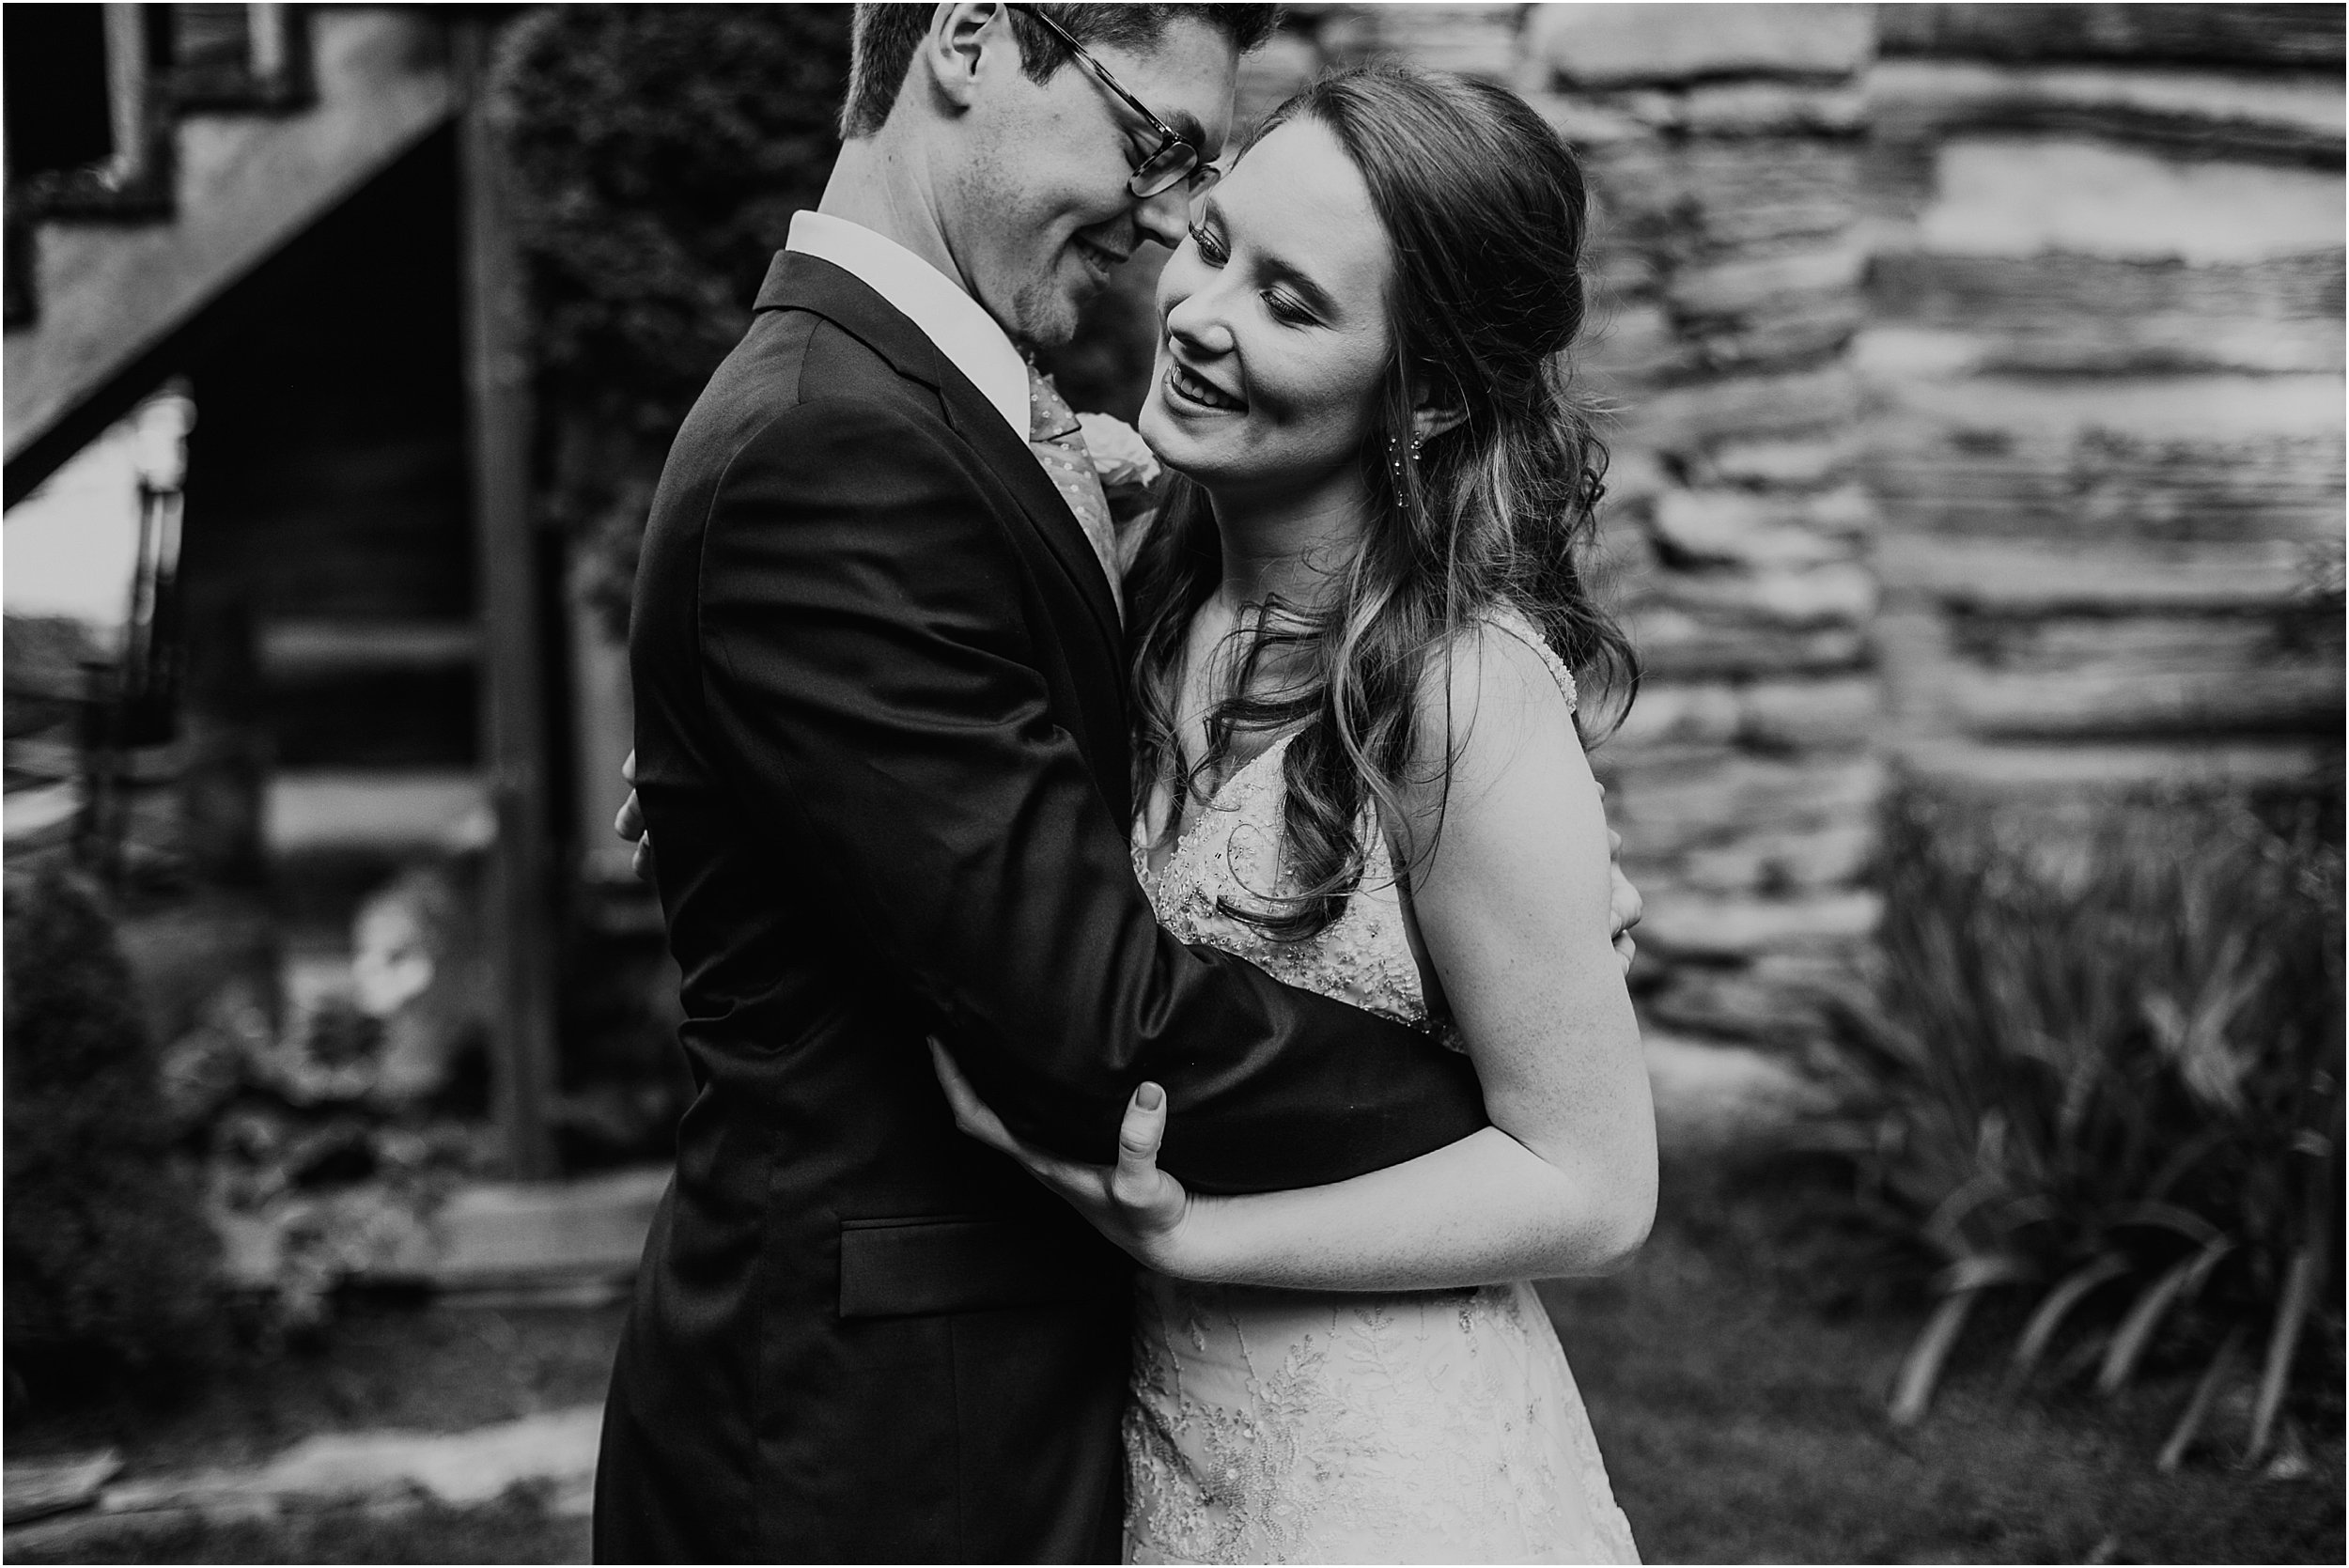 A bride and groom embrace in a hug in front of an old cabin building. They are in wedding clothes, with their eyes closed, hugging. The image is in black and white.